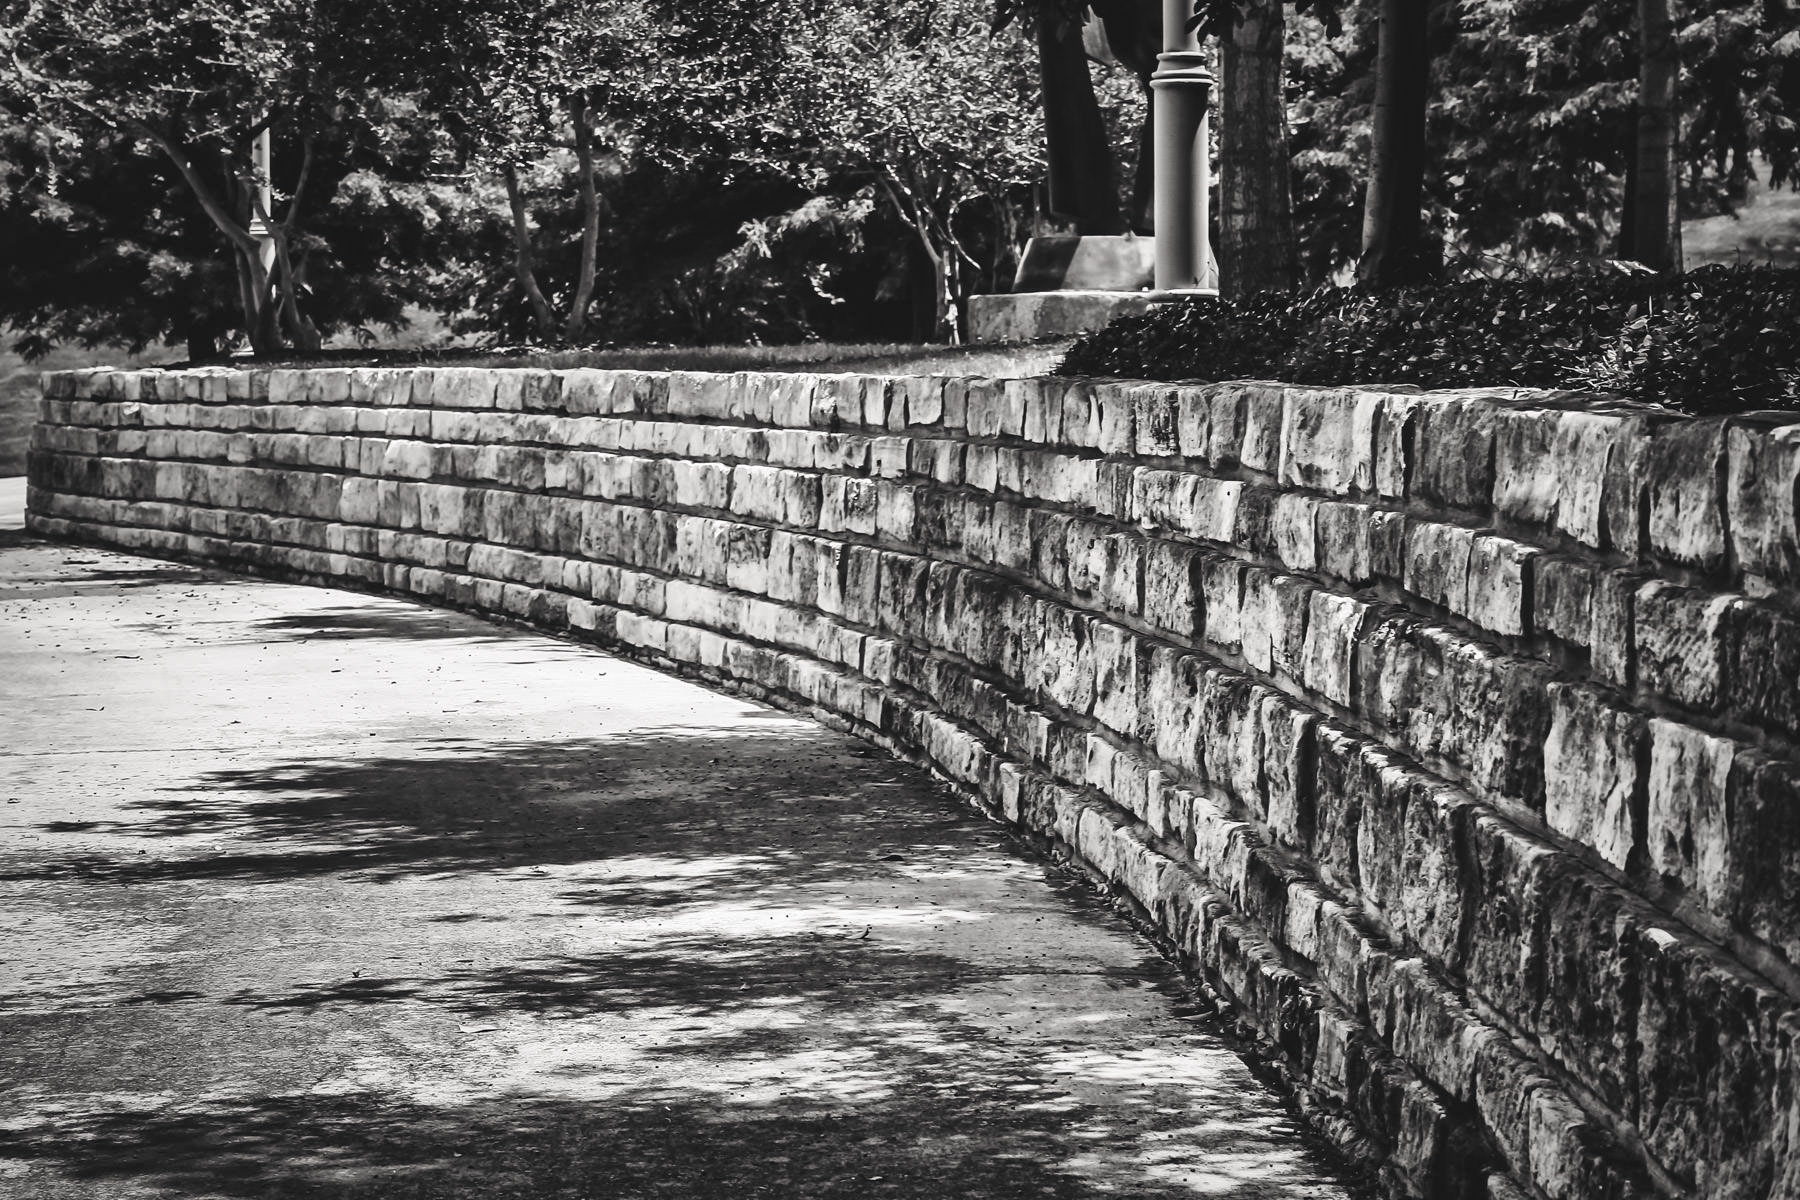 A rough-hewn stone wall at Hall Office Park in Frisco, Texas.